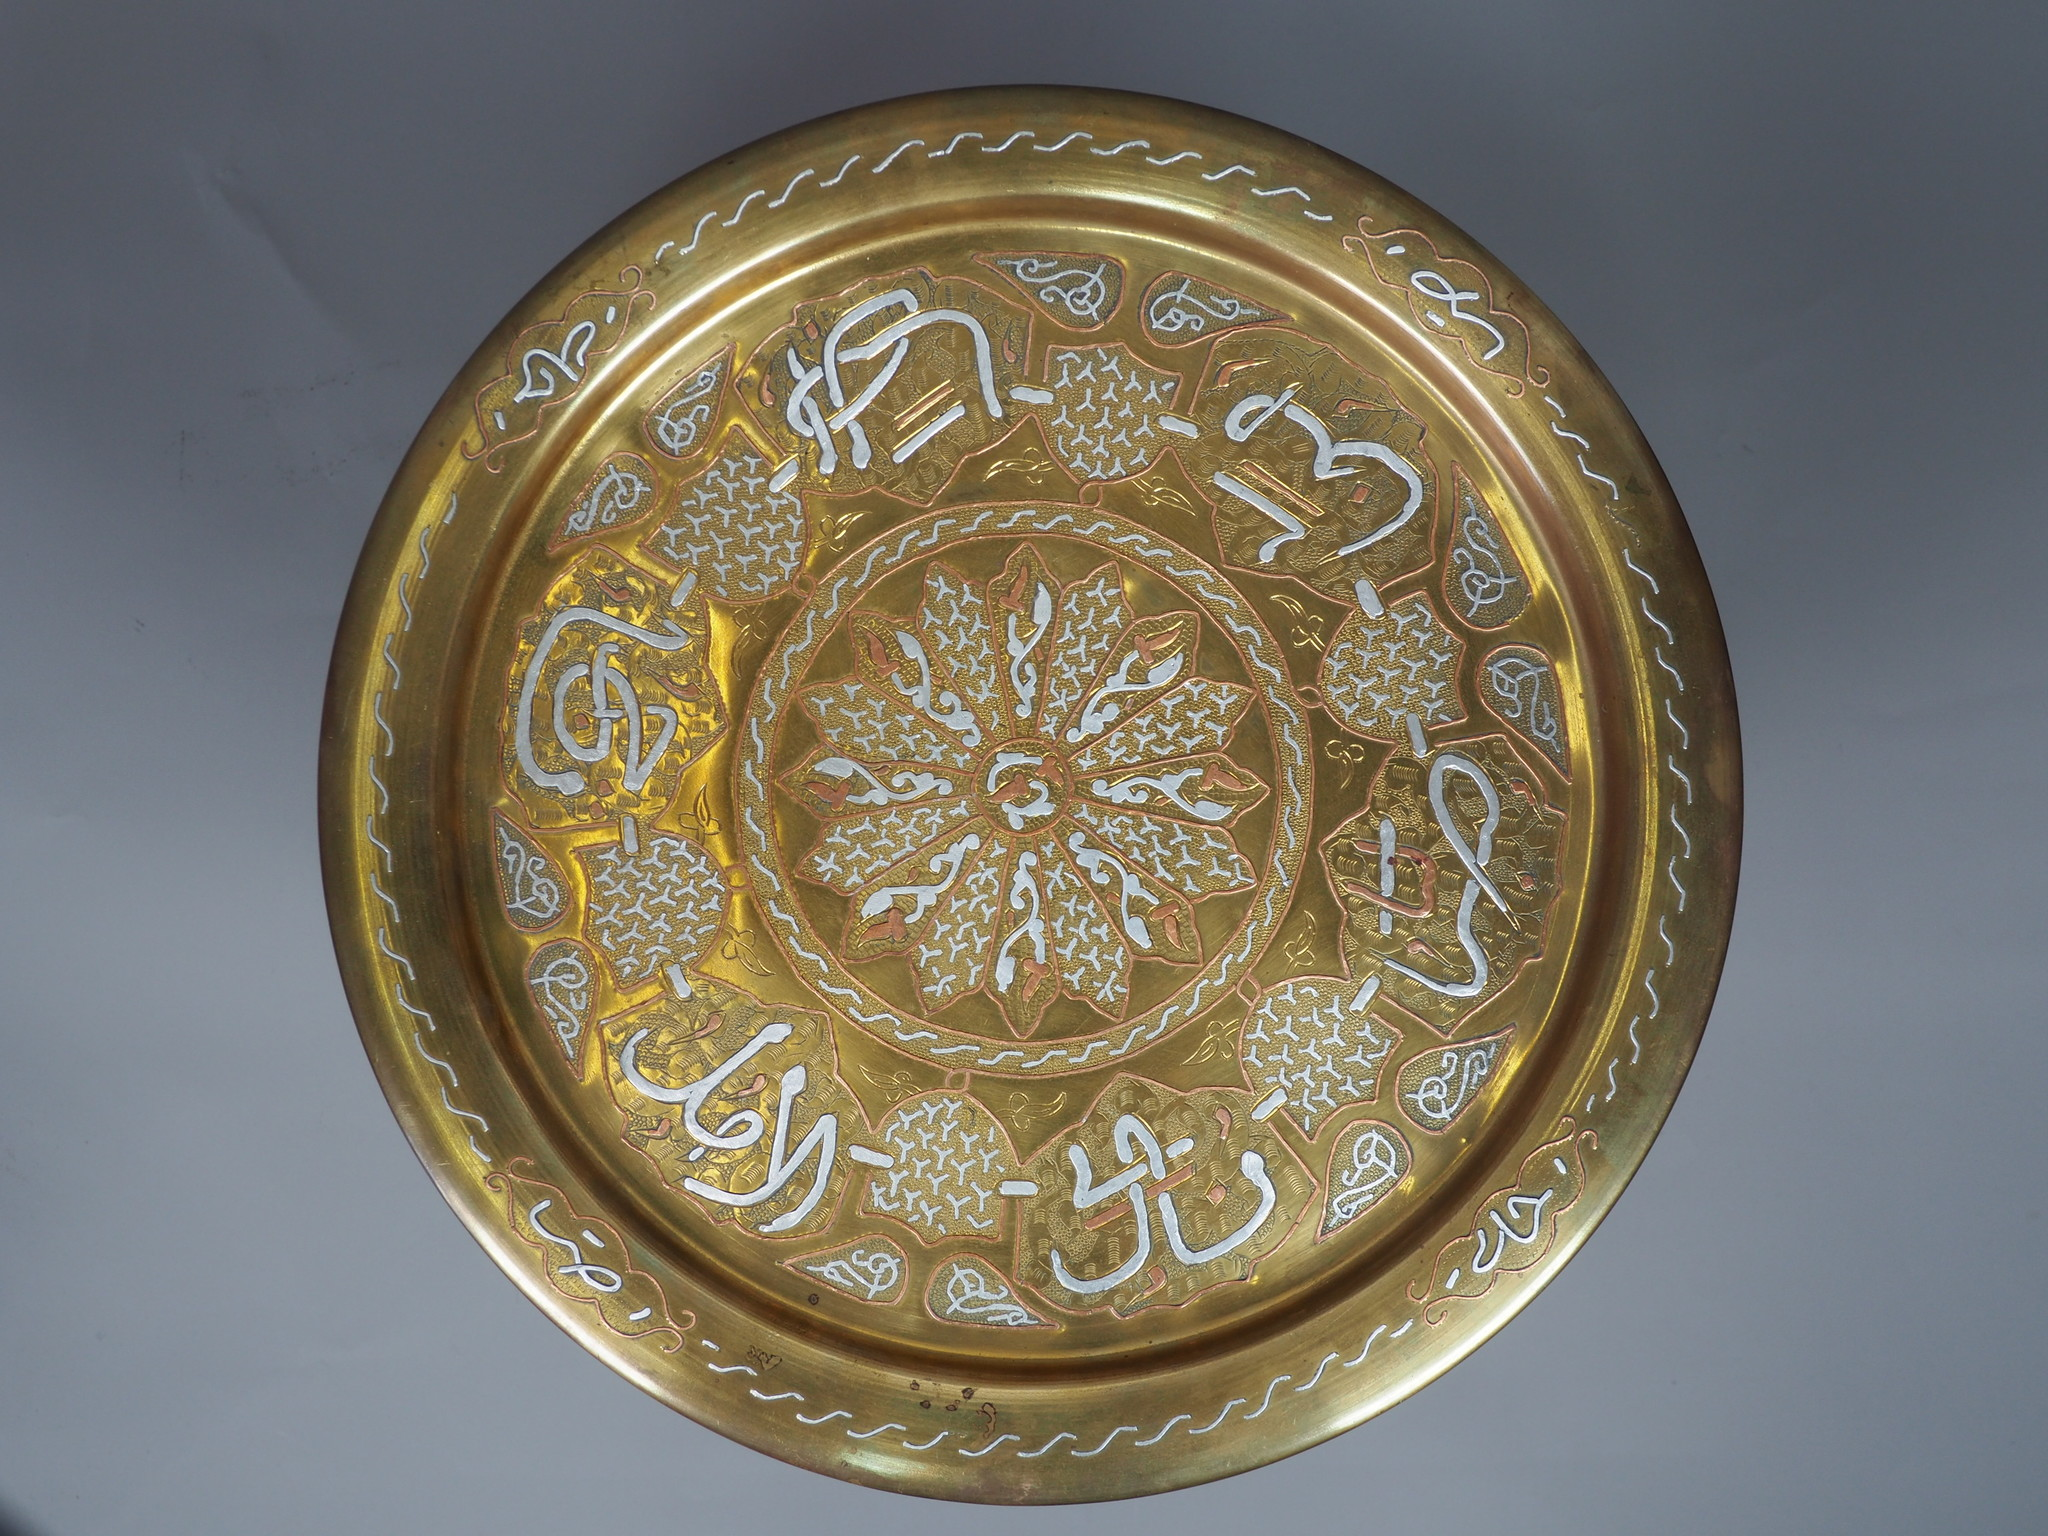 45 cm Antique ottoman orient Islamic  Hammer Engraved Brass table Tray Syria Morocco, Egypt Mamluk Cairoware with arabic calligraphy 21/3